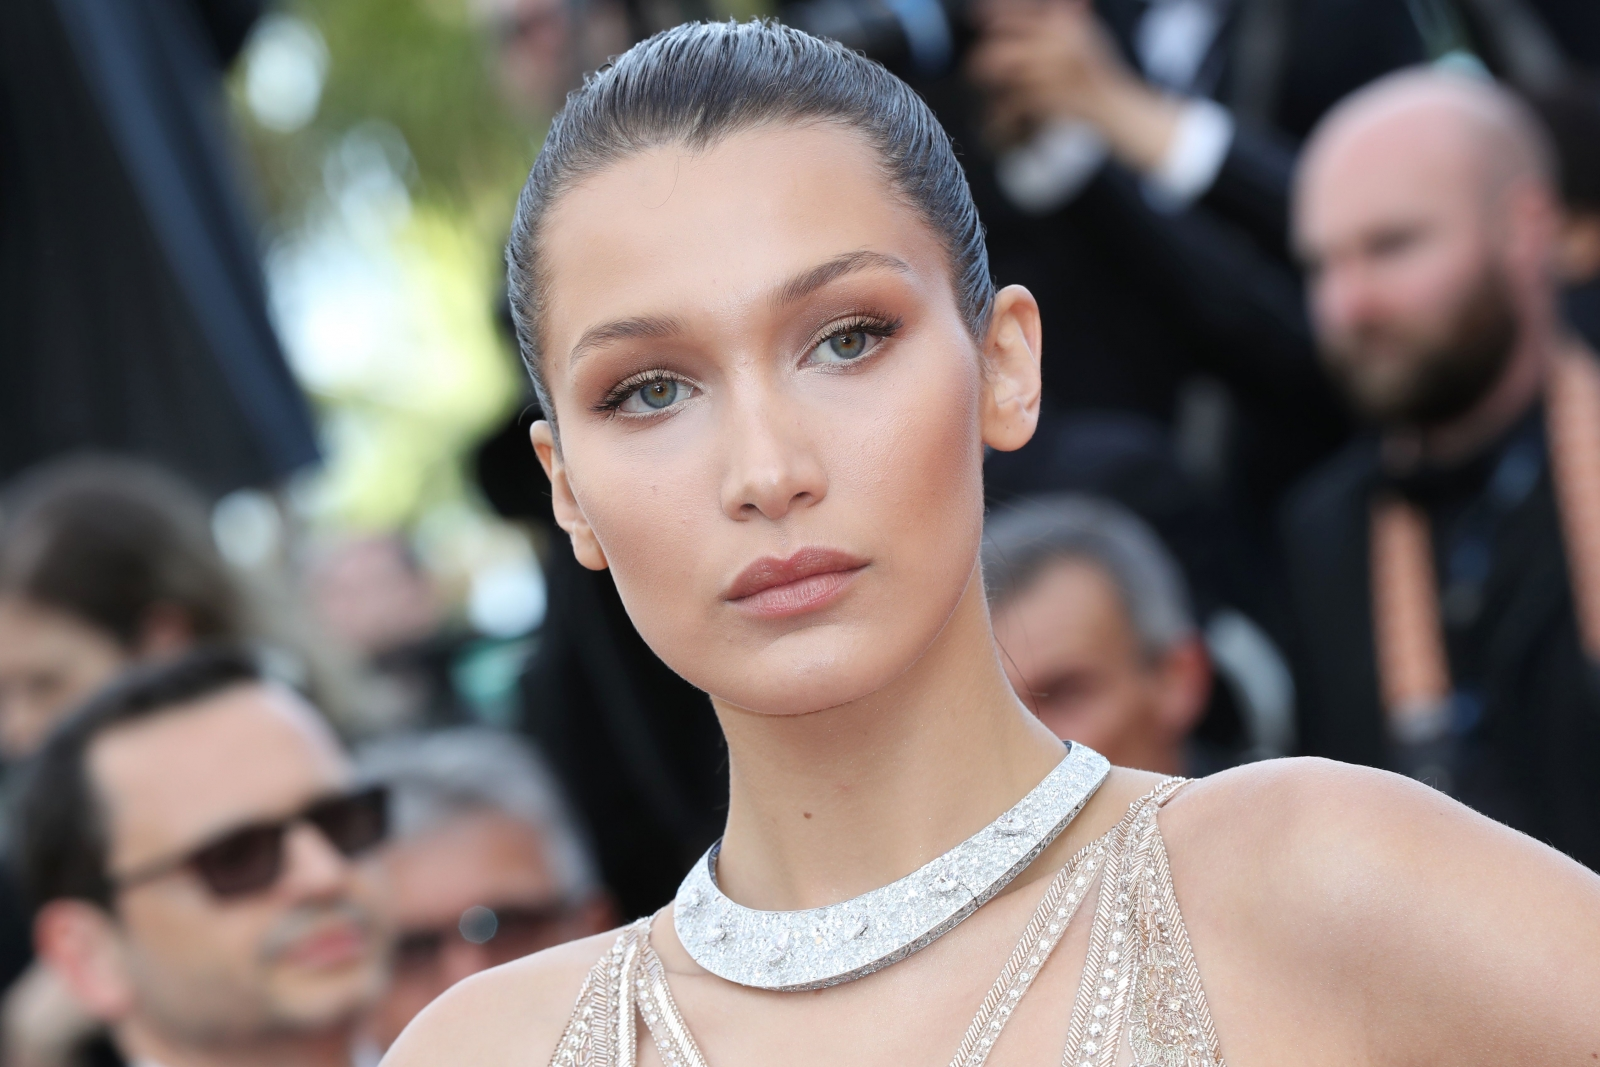 Bella Hadid nudes (49 photo), photos Bikini, Instagram, legs 2017